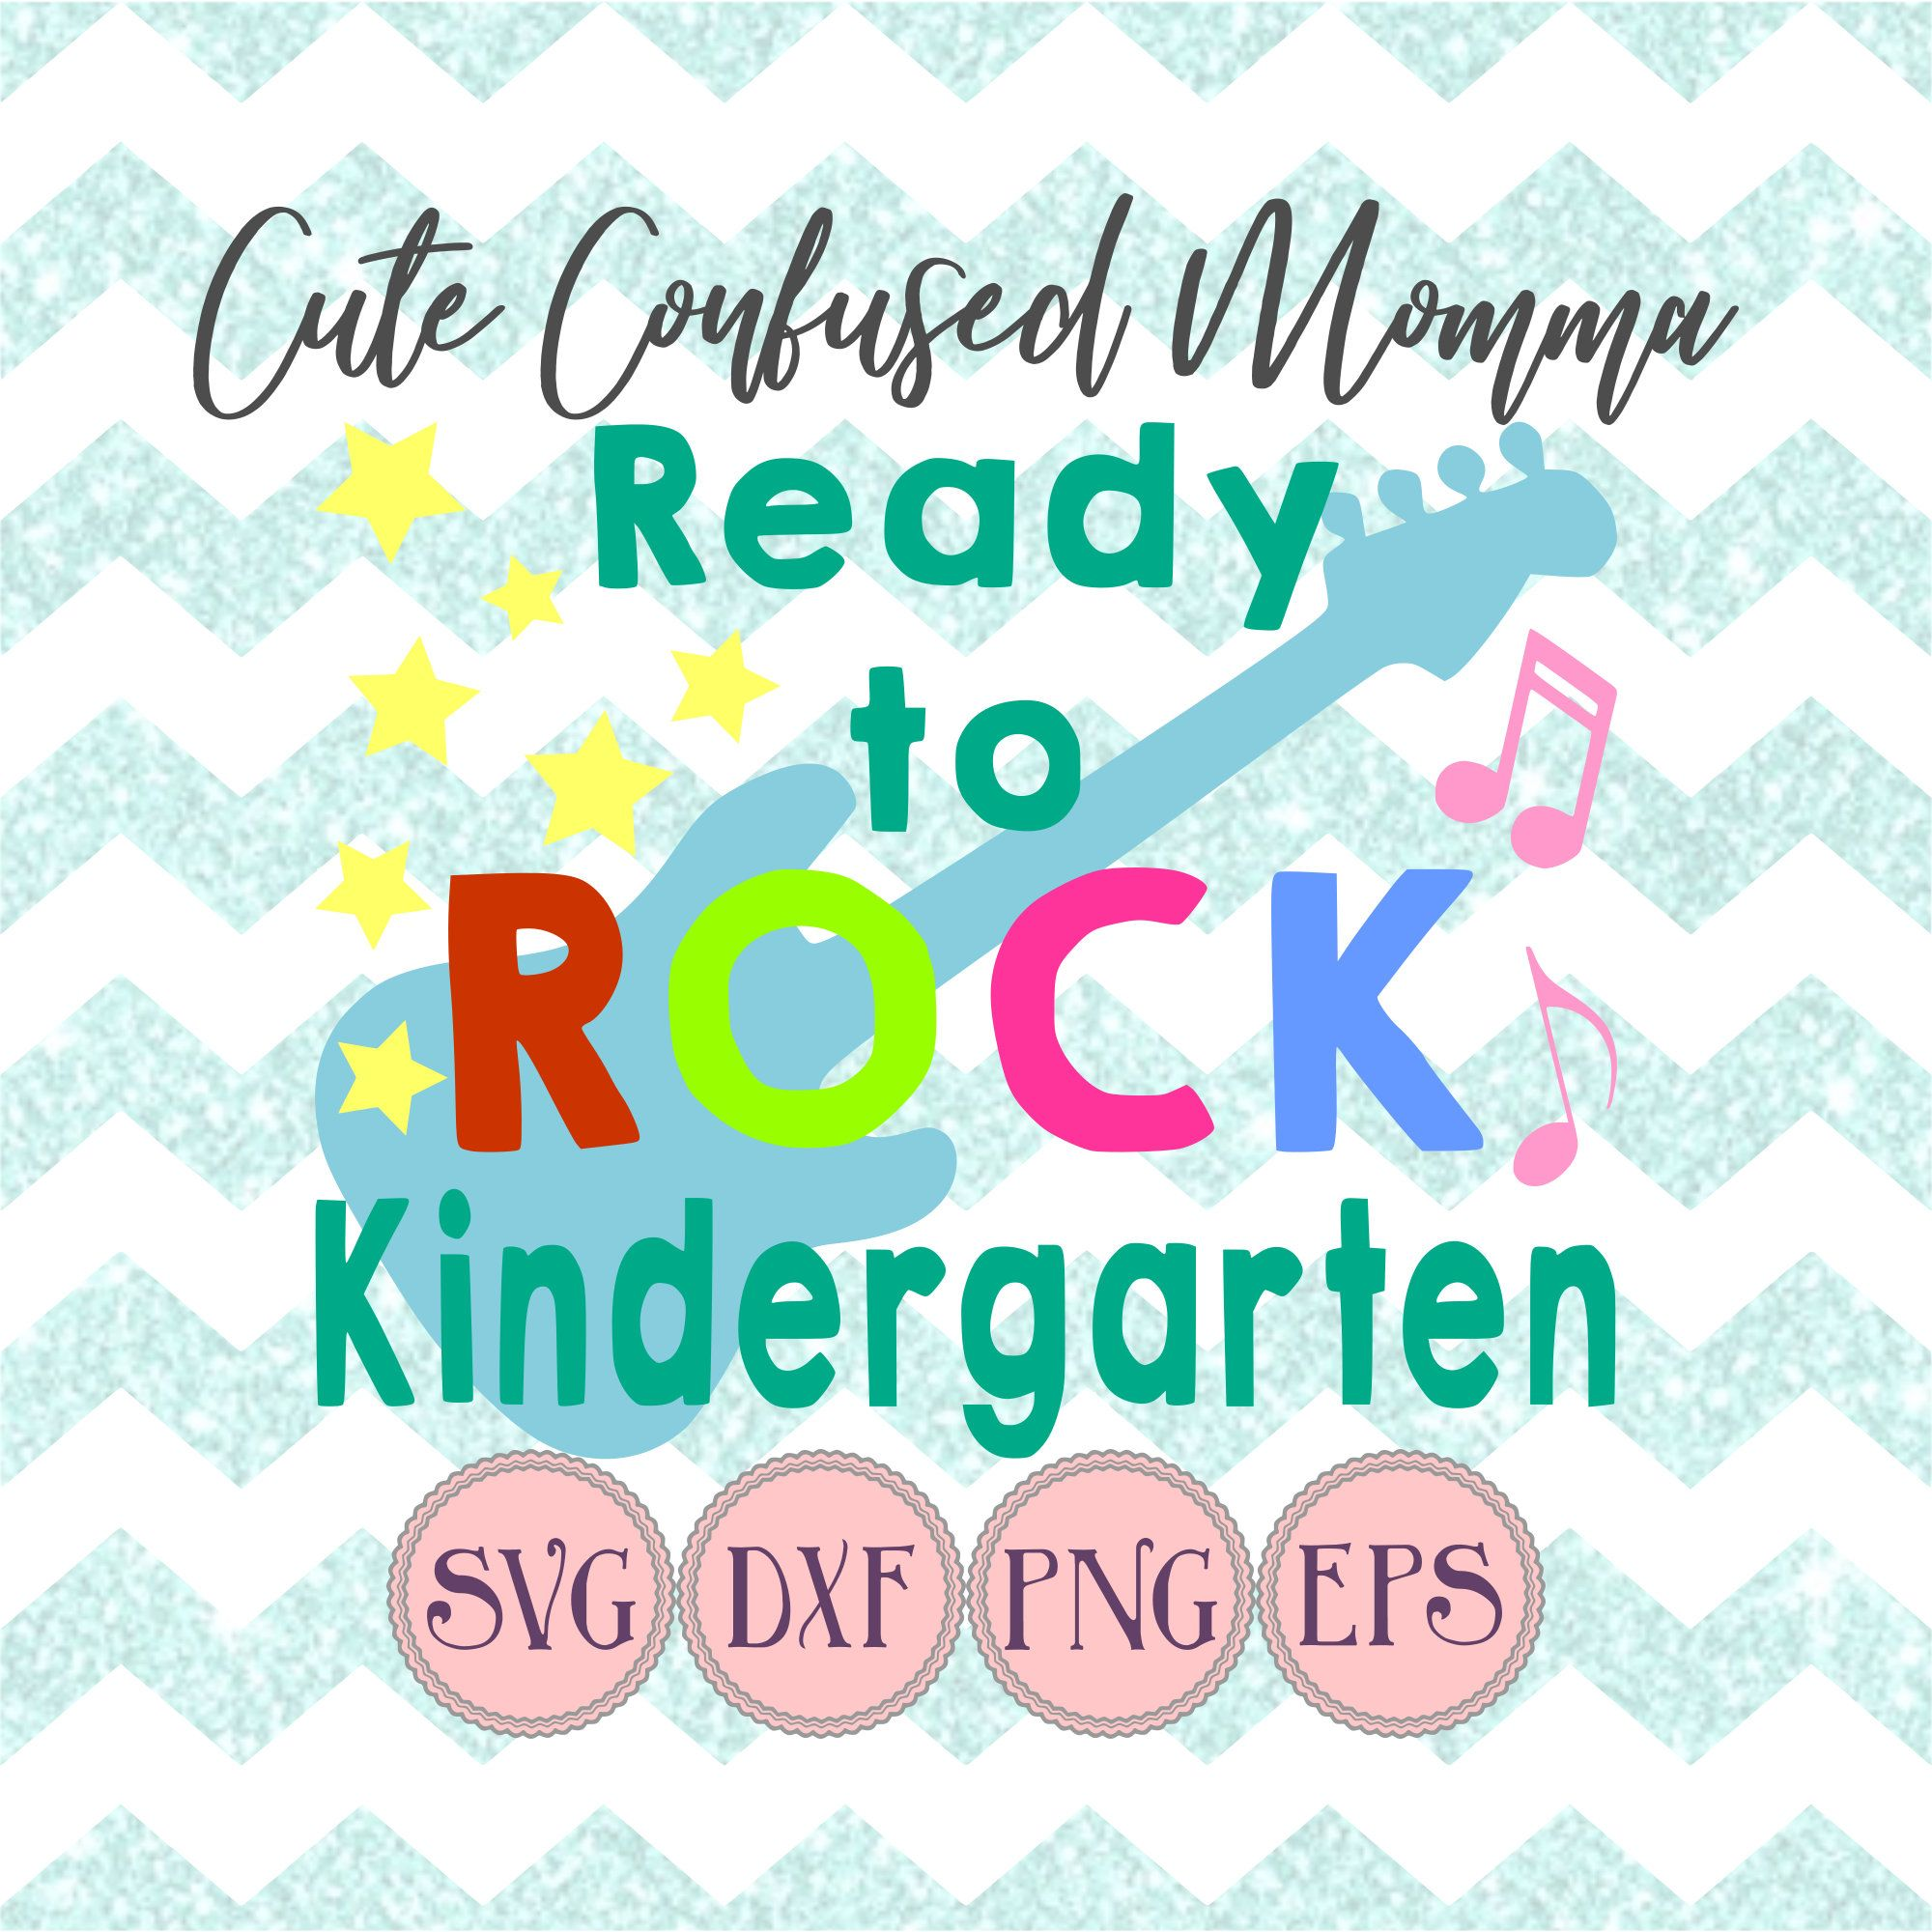 First Day Of School Kindergarten Svg Files For Cricut, Back